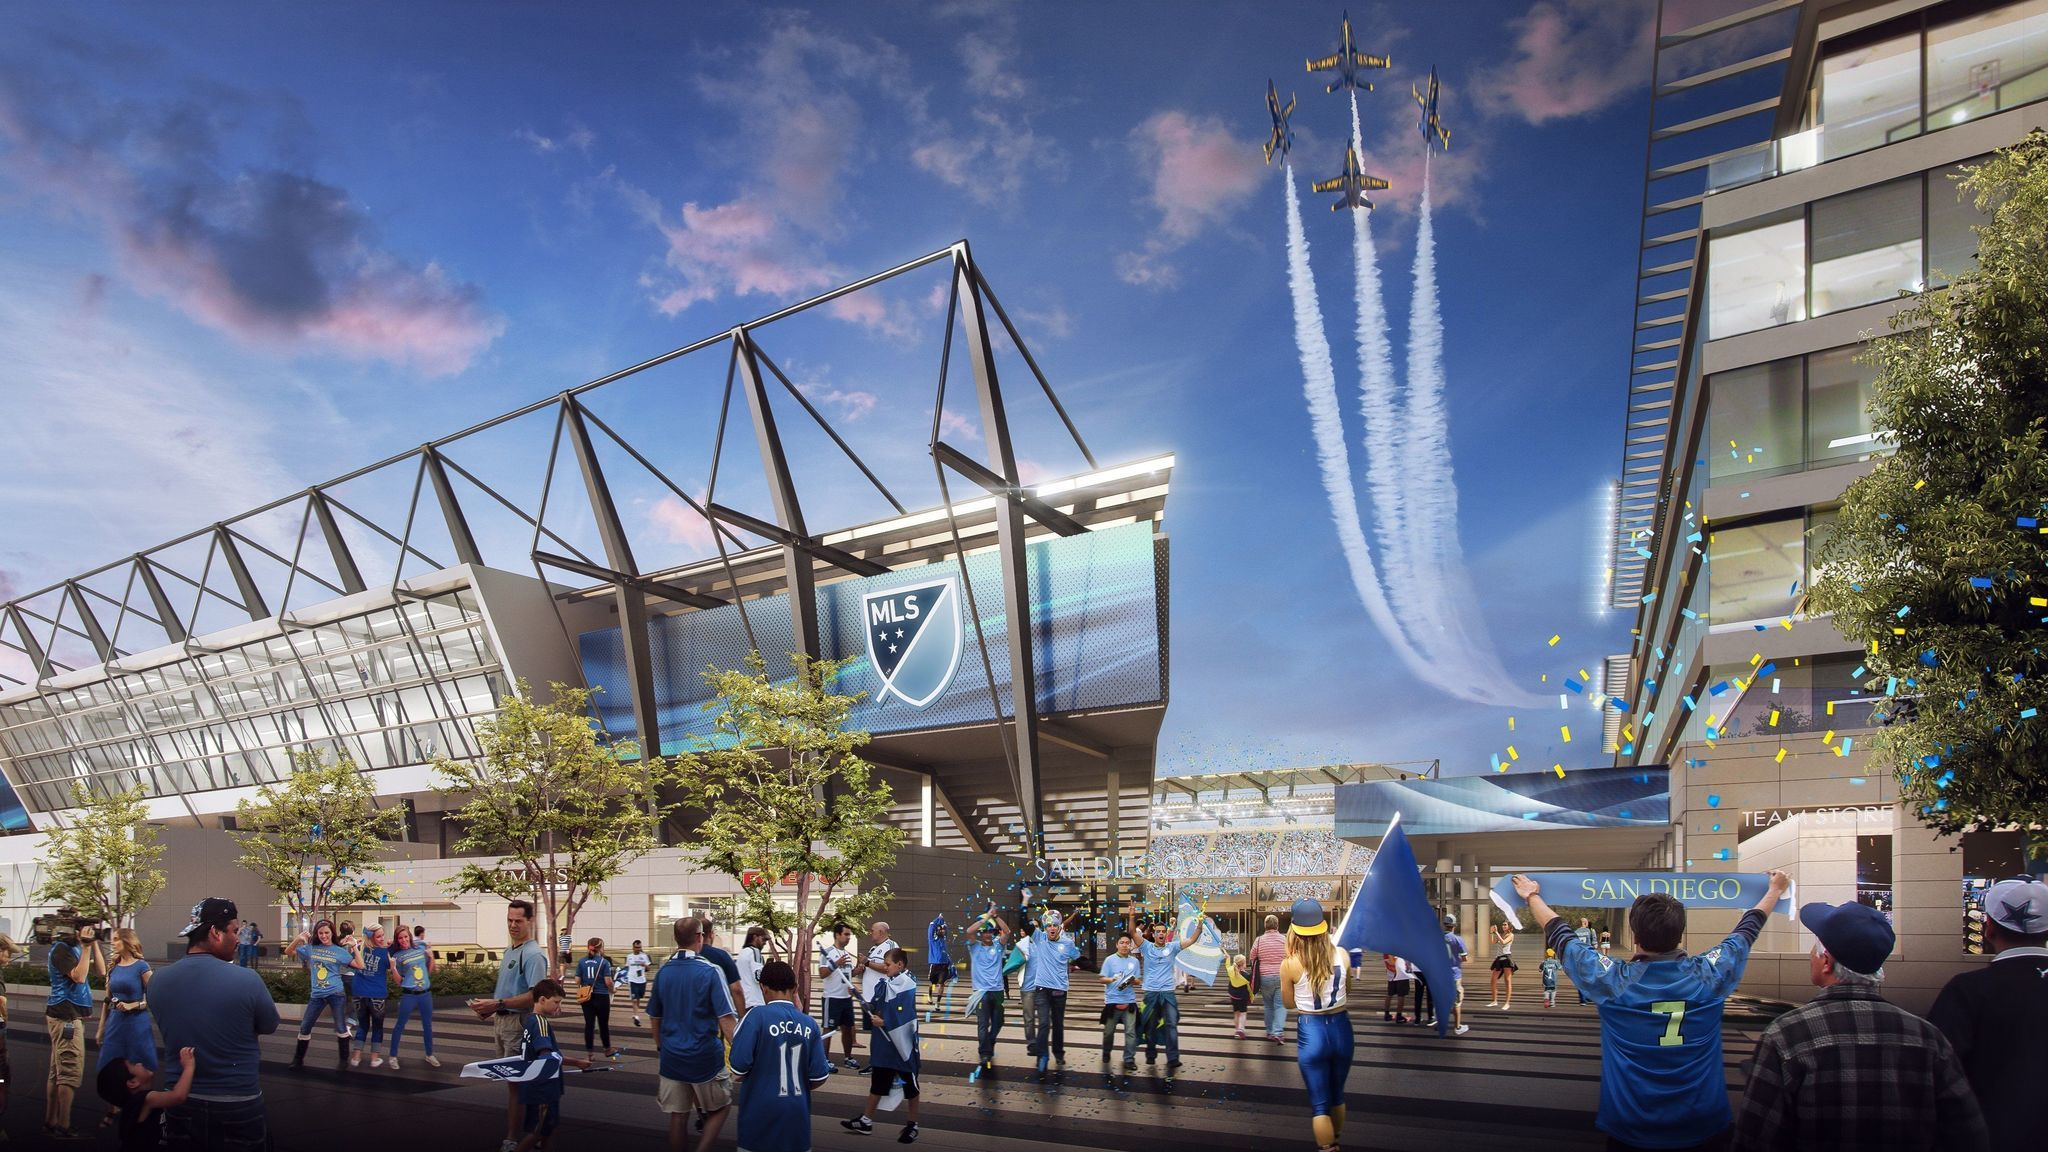 Gensler Sports produced this artist's rendering of what a 30,000-seat Major League Soccer stadium might look like at the Qualcomm Stadium property.